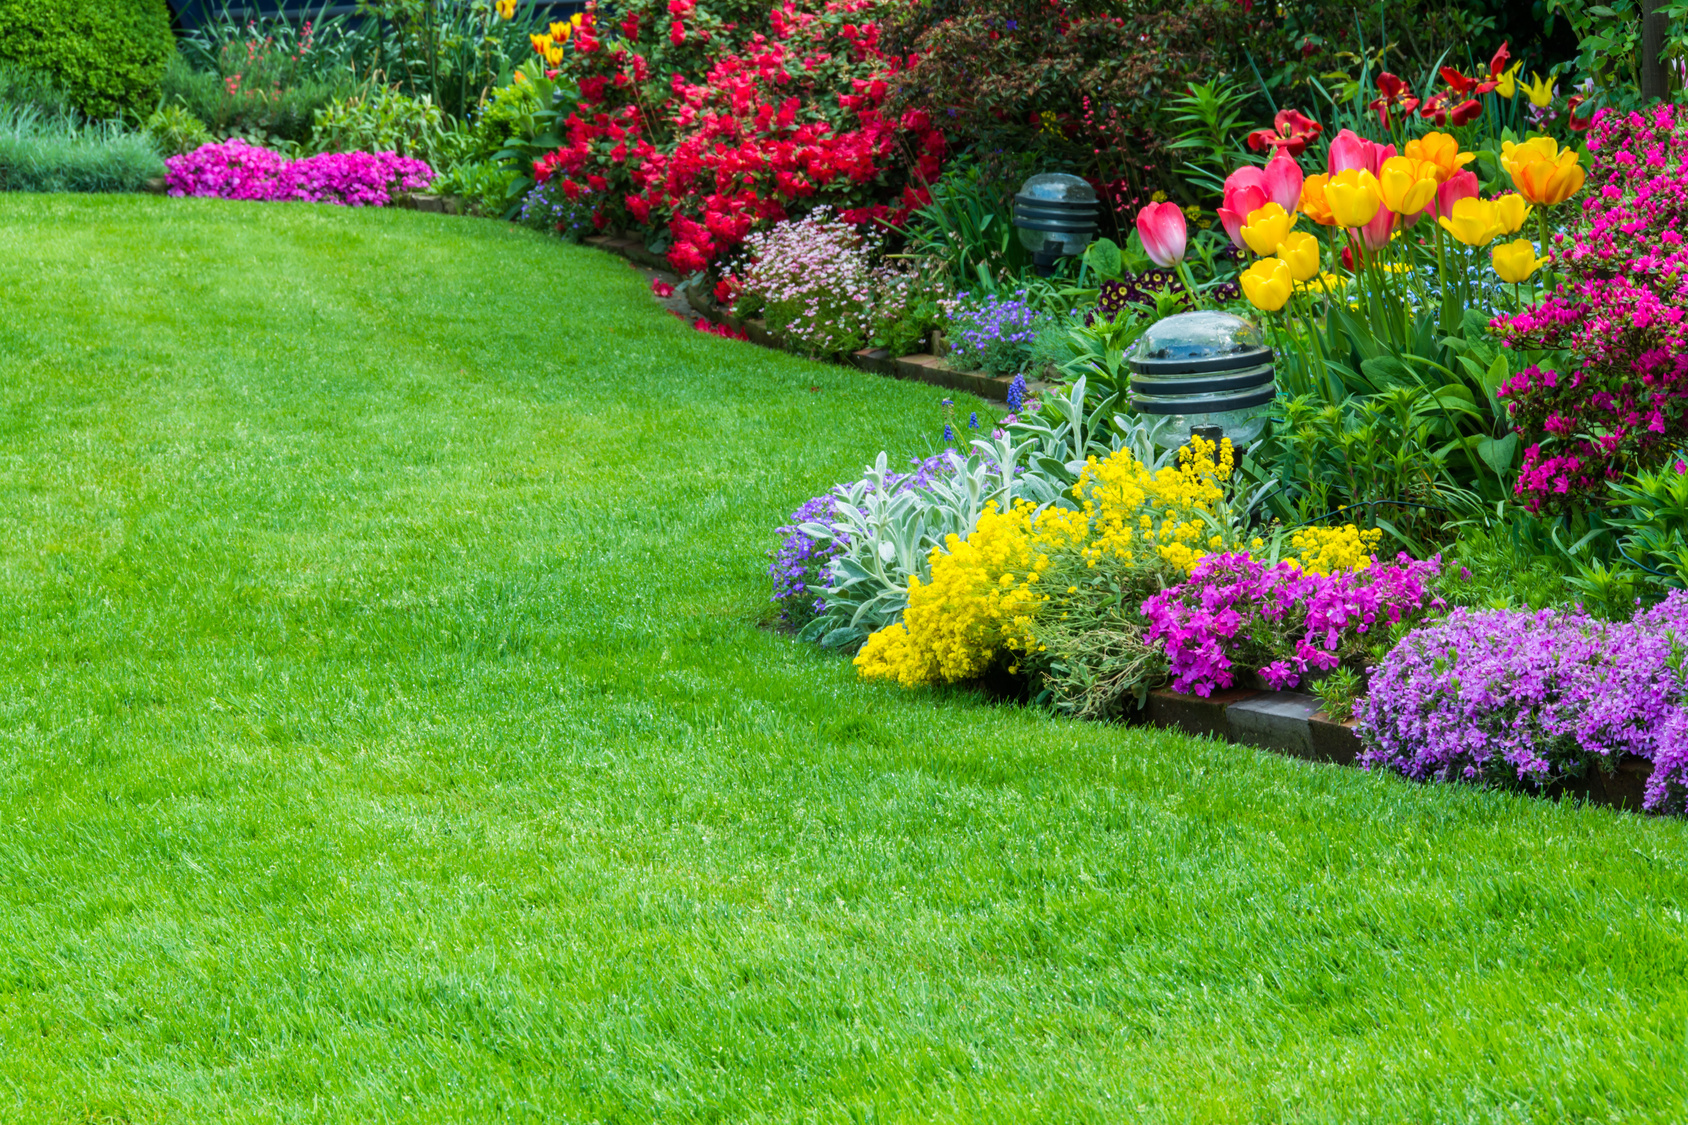 top 4 benefits of garden maintenance services - Garden Mainenance